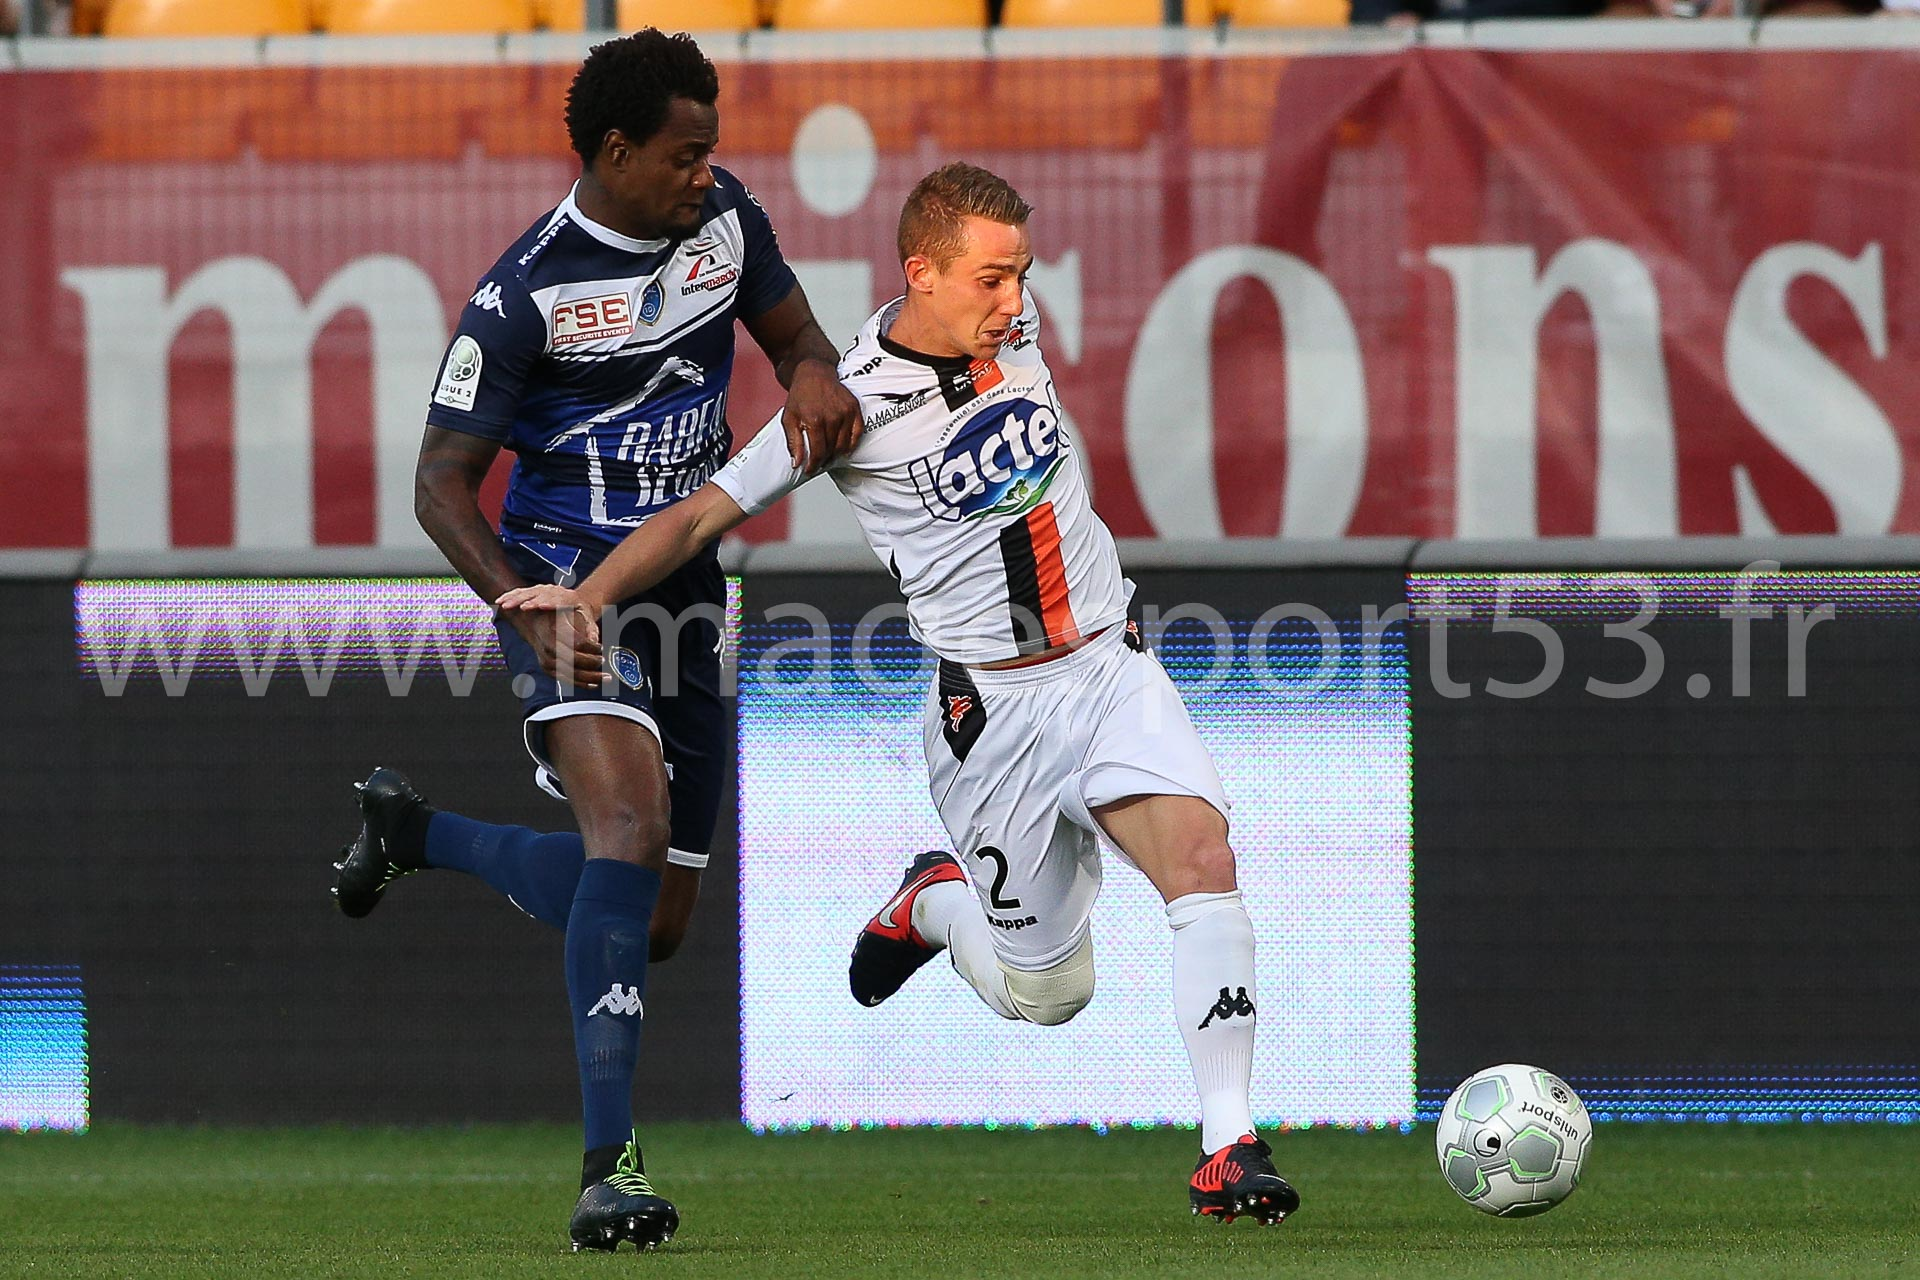 RINCON (ES Troyes AC), Kevin PERROT (Stade Lavallois)